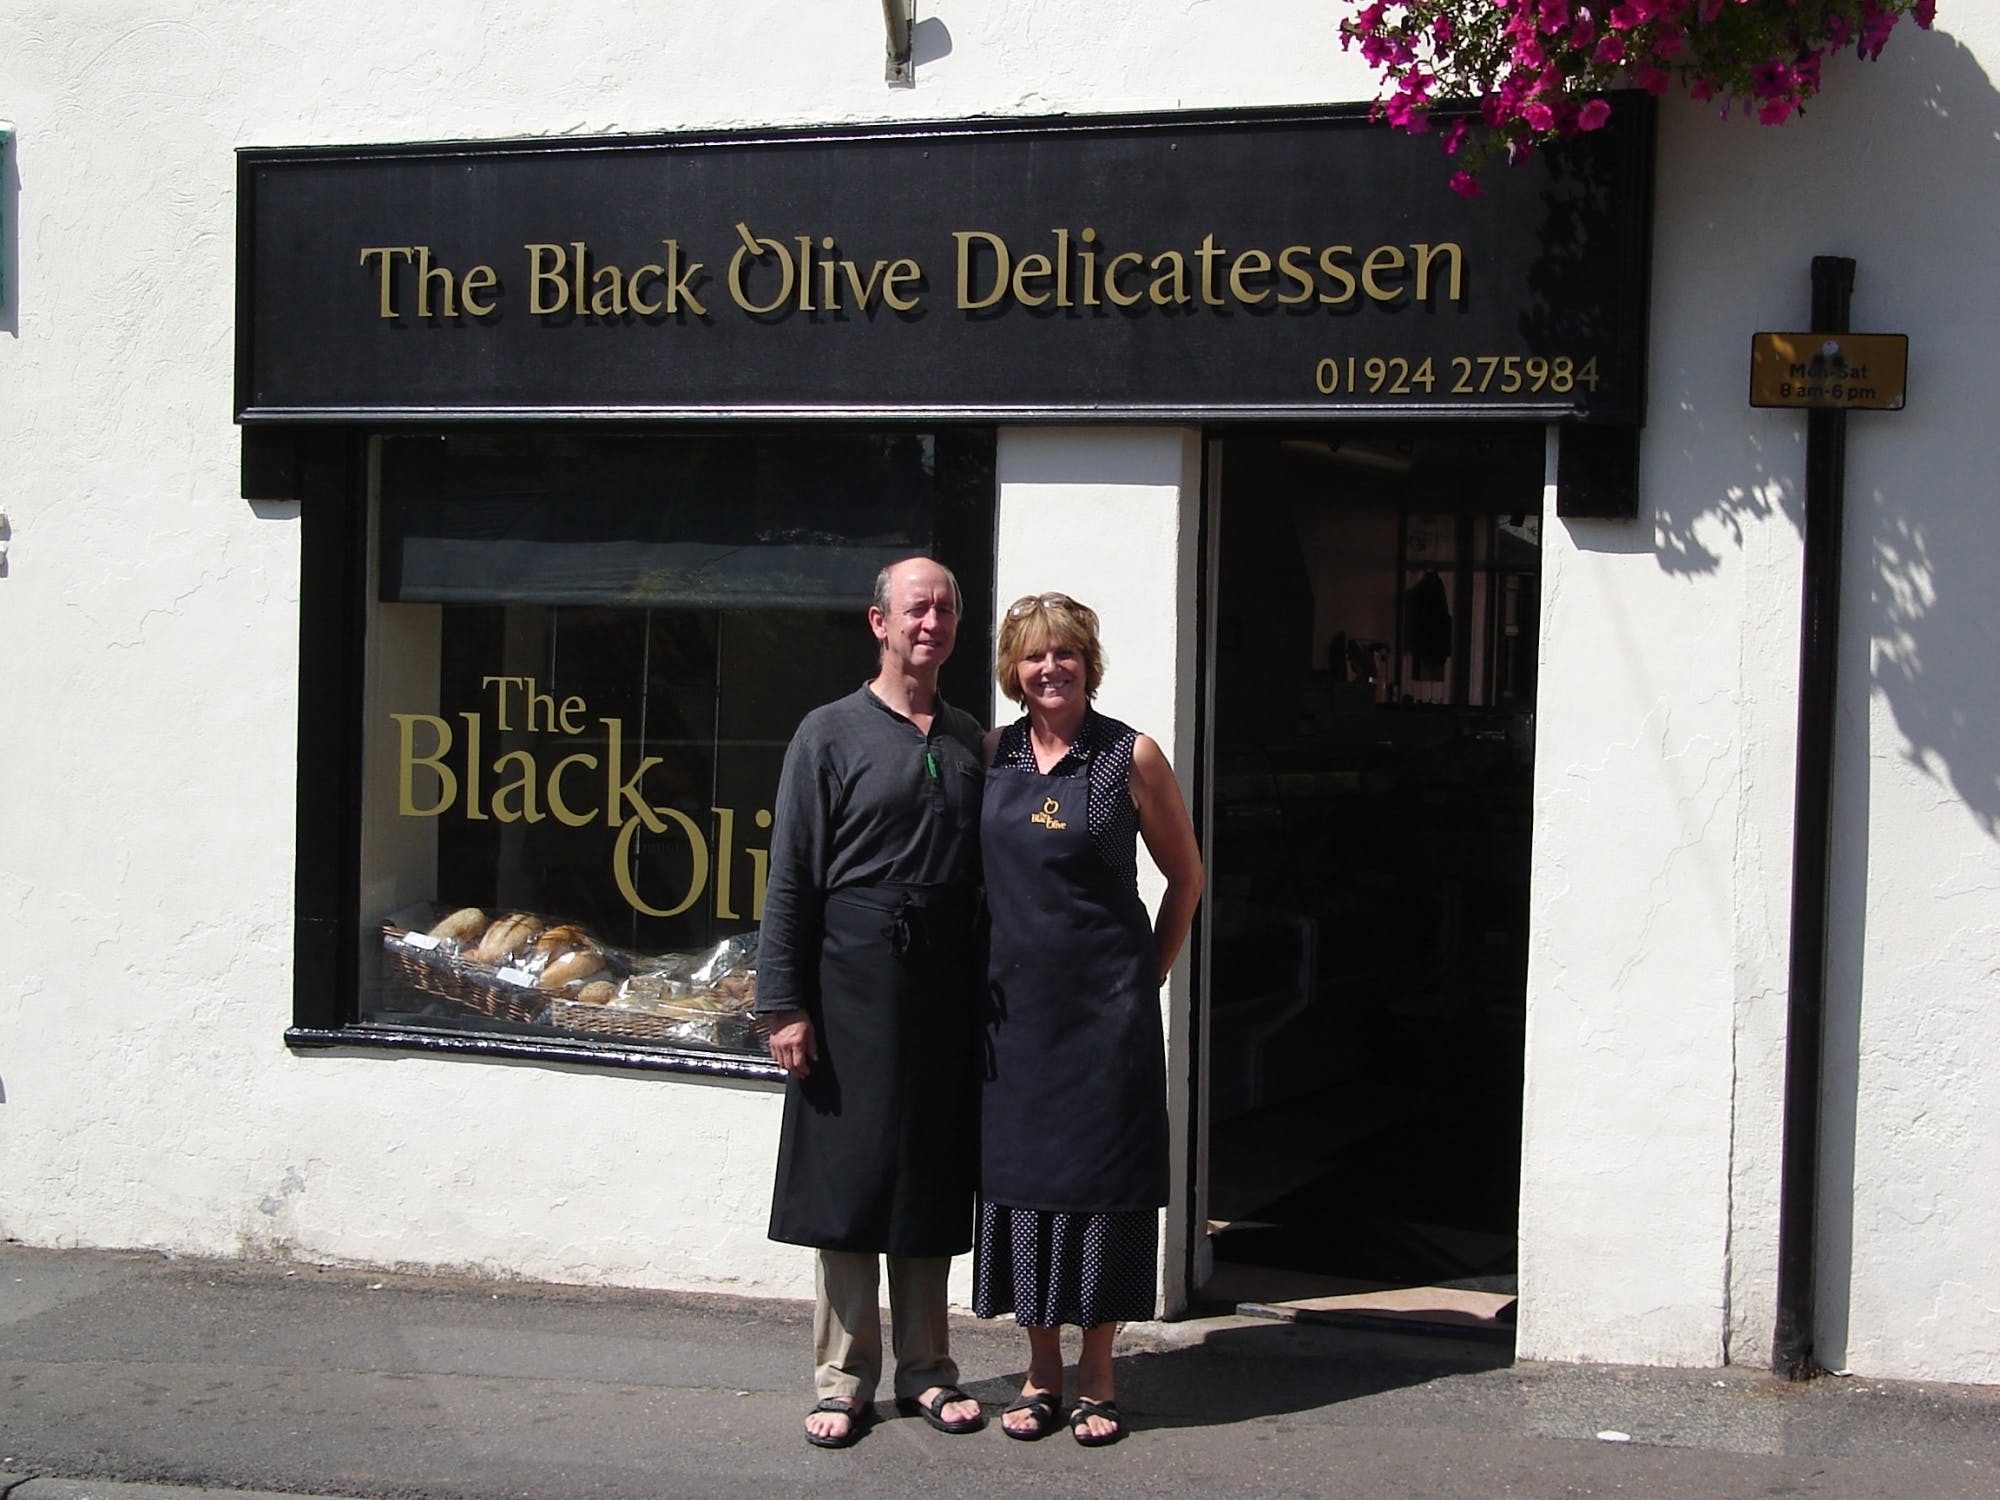 The Black Olive Delicatessen